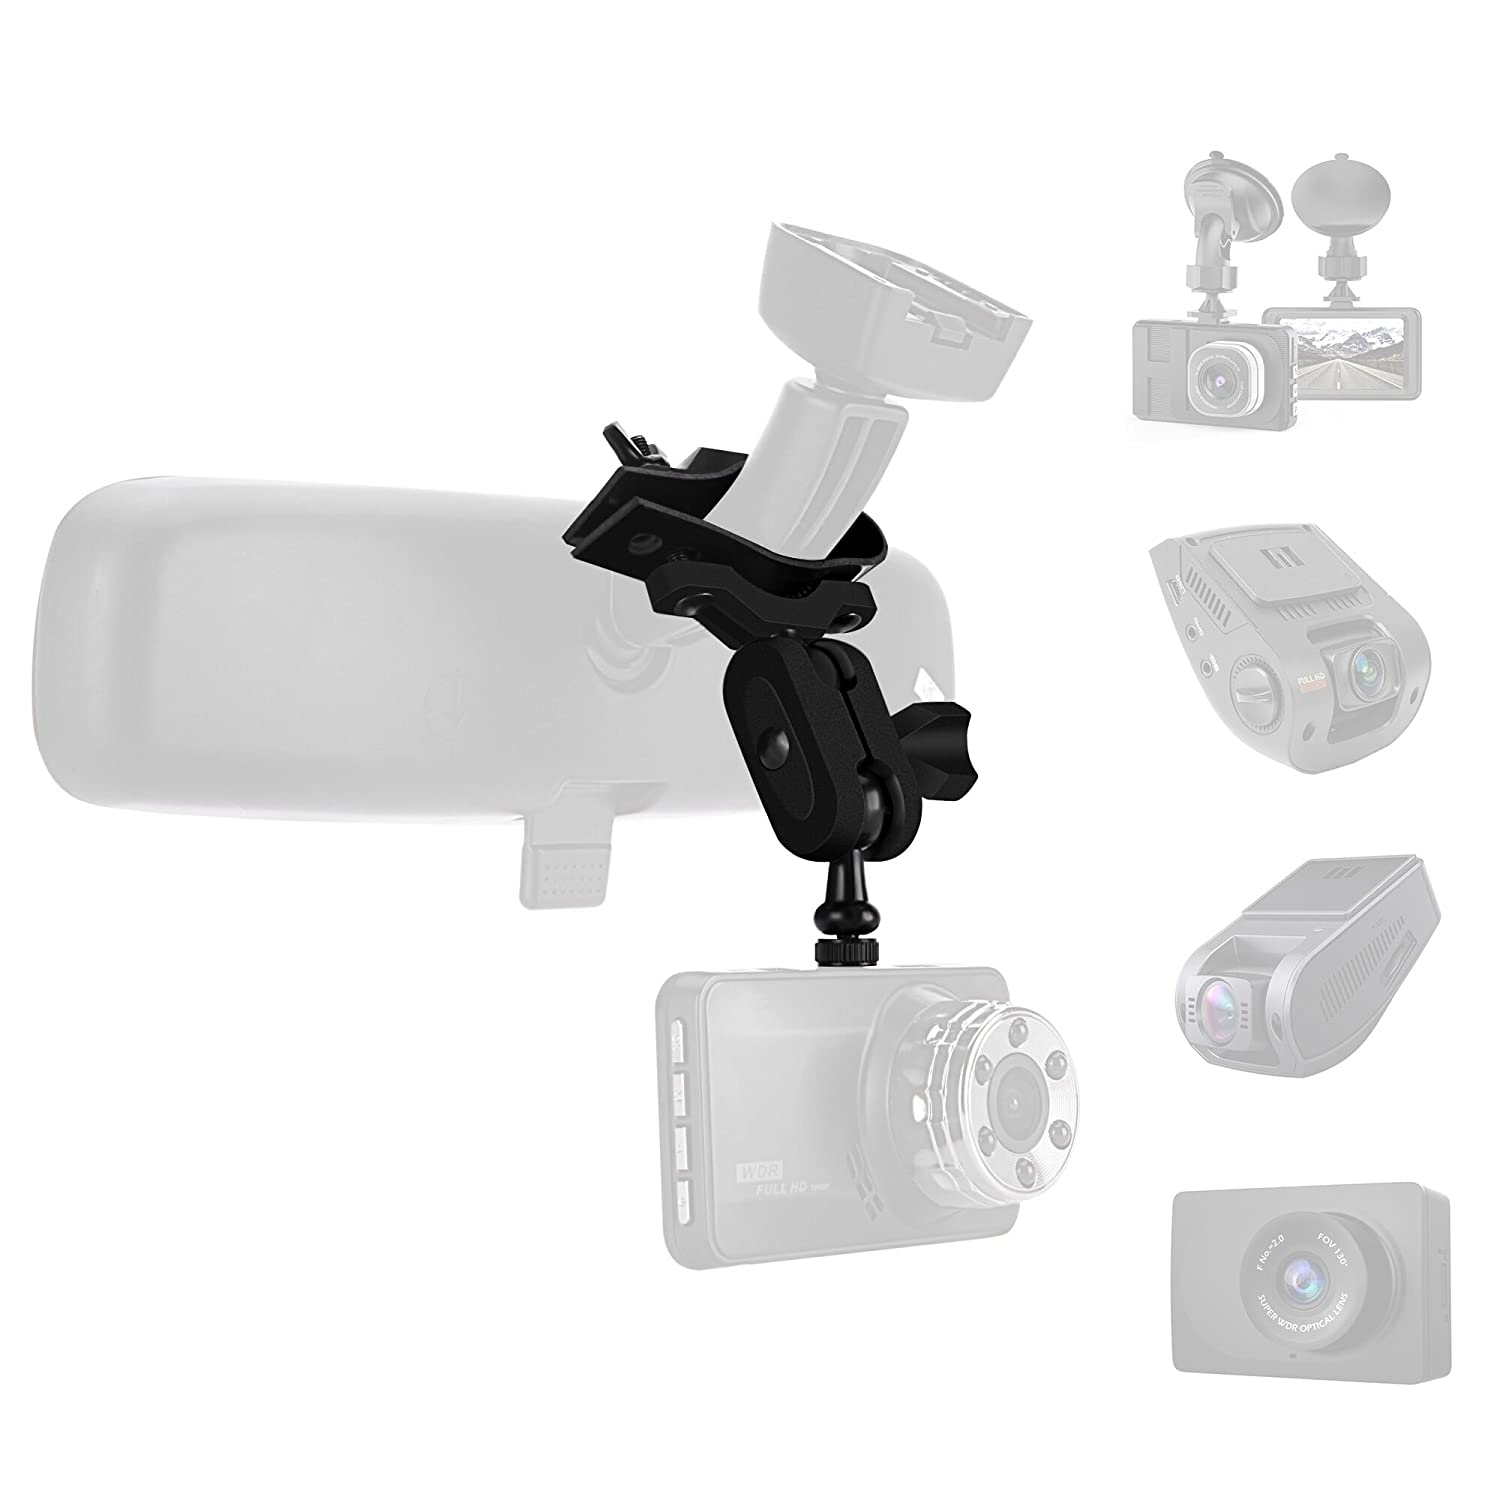 Dash Cam Suction Cup Mount and 3M Adhesive Mount for Dash Camera, Come with 15+ Different Joints Suitable for TOGUARD, apeman, Yi, Mibao, SuperEye, Modohe,DuDuBell,Crosstour nd Most Other Dash Cameras SoeKoa